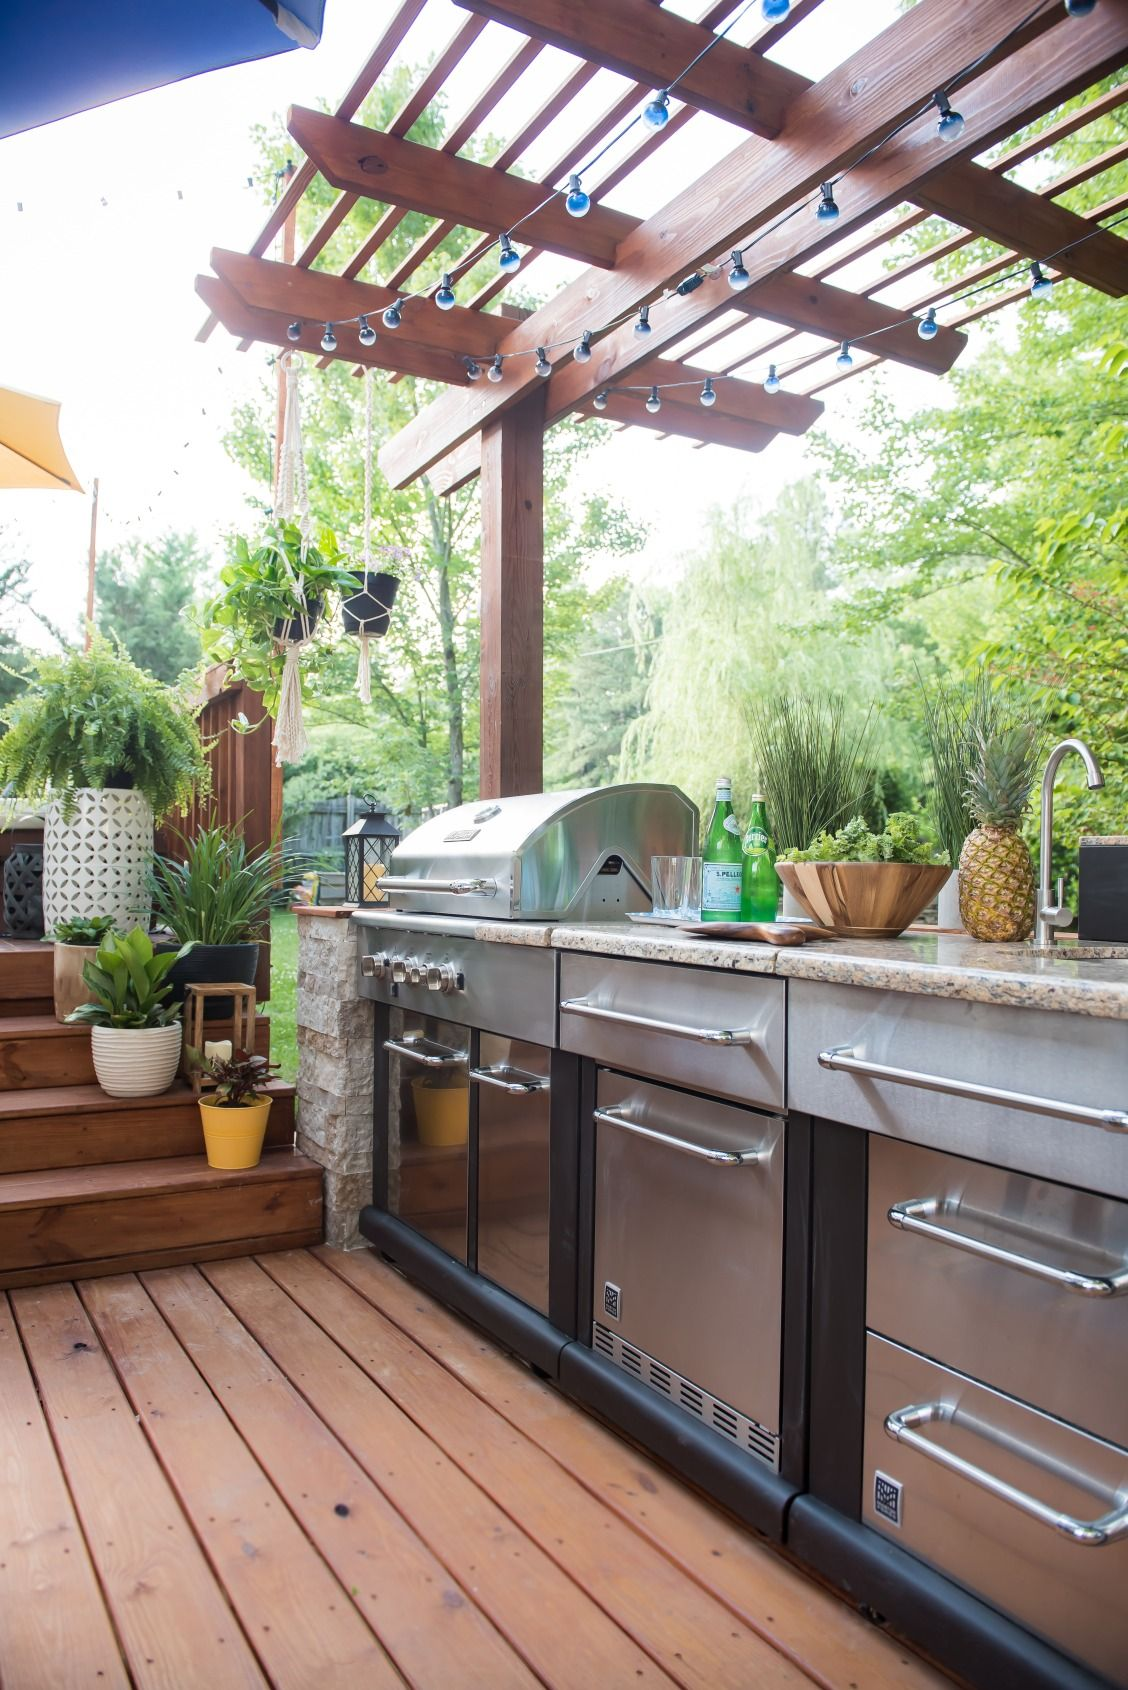 Amazing Outdoor Kitchen You Want To See Outdoor Kitchen Design